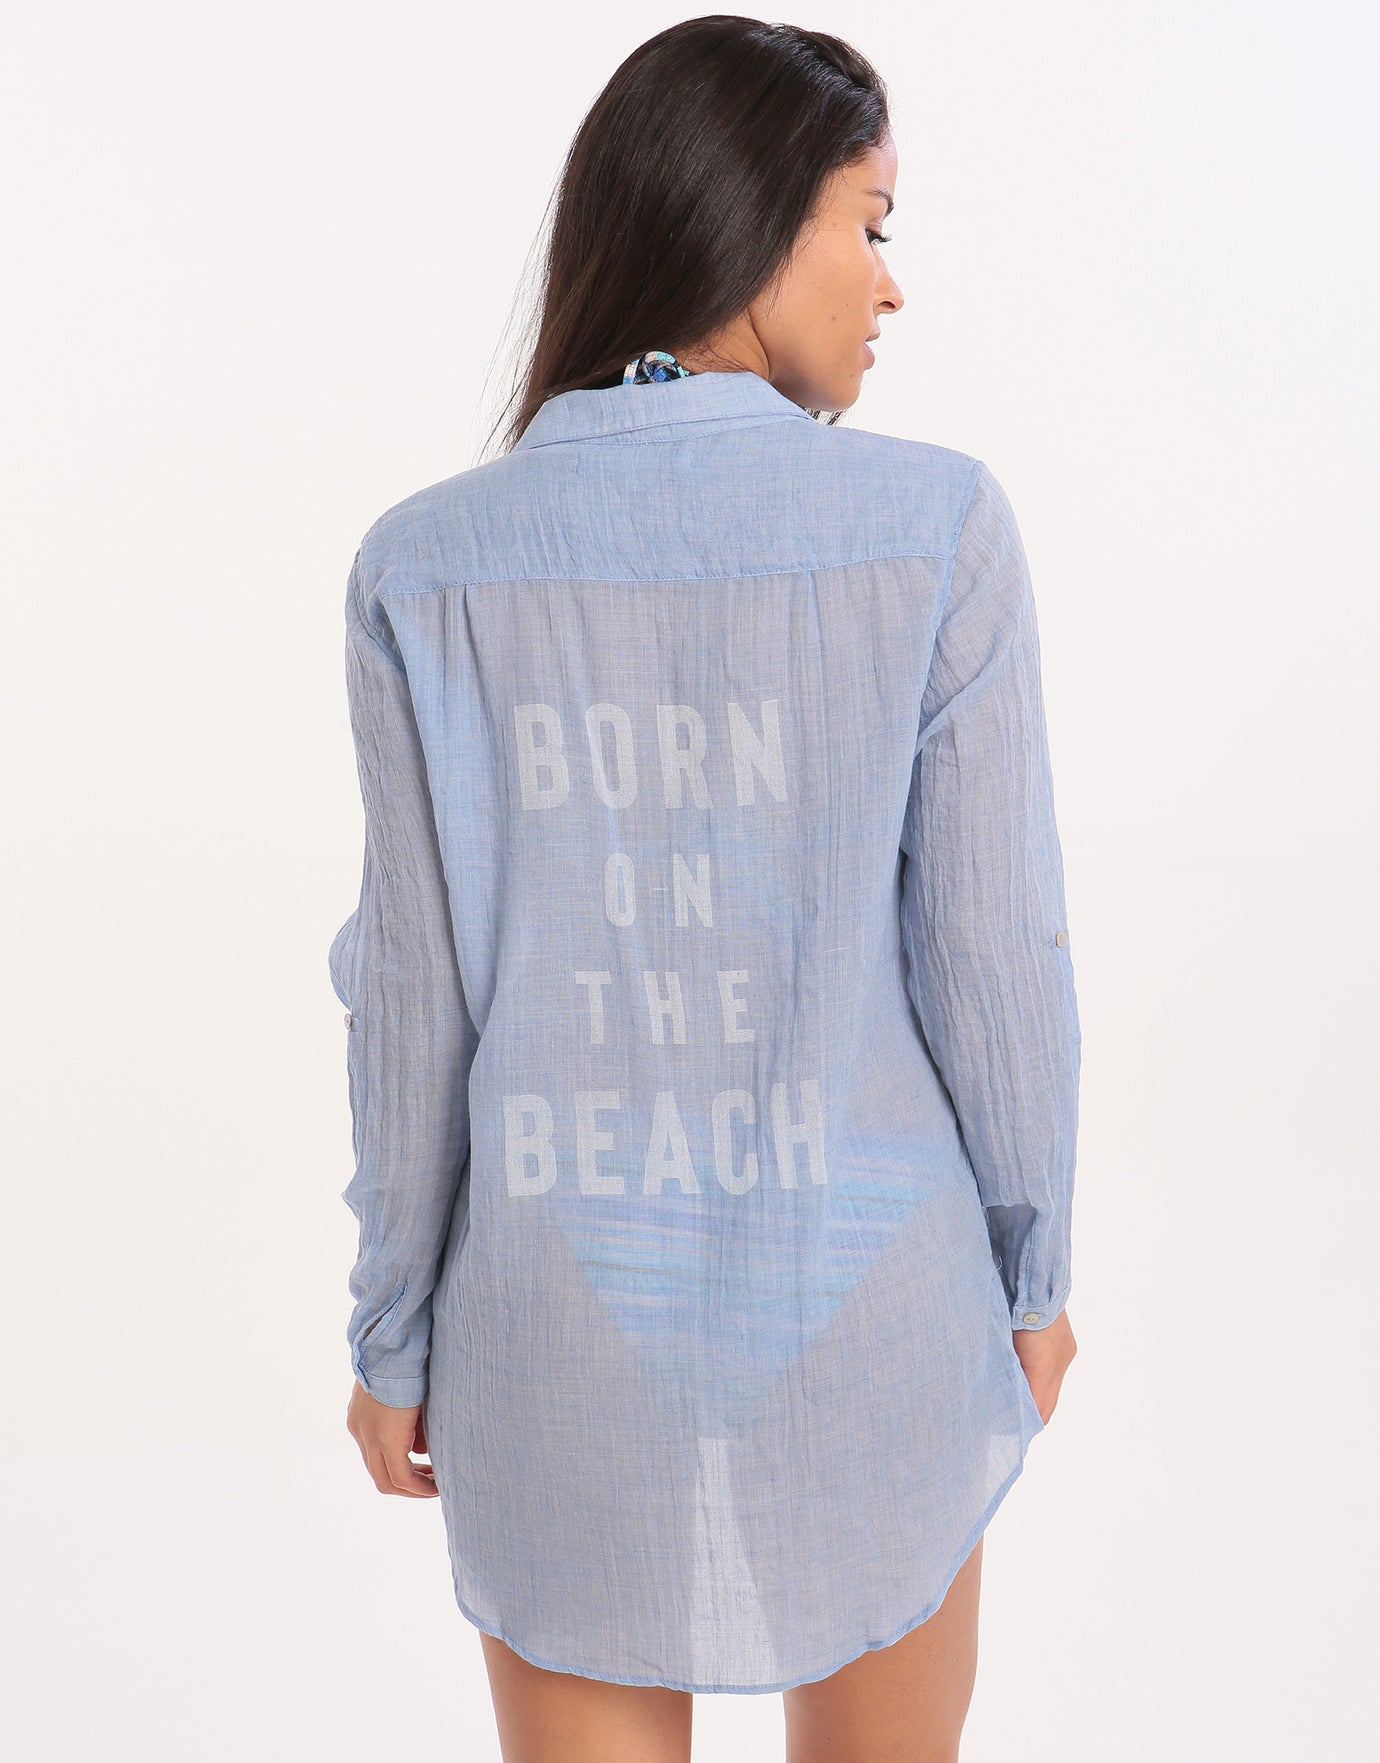 Banana Moon Adilson Gary Beach Shirt - Blue